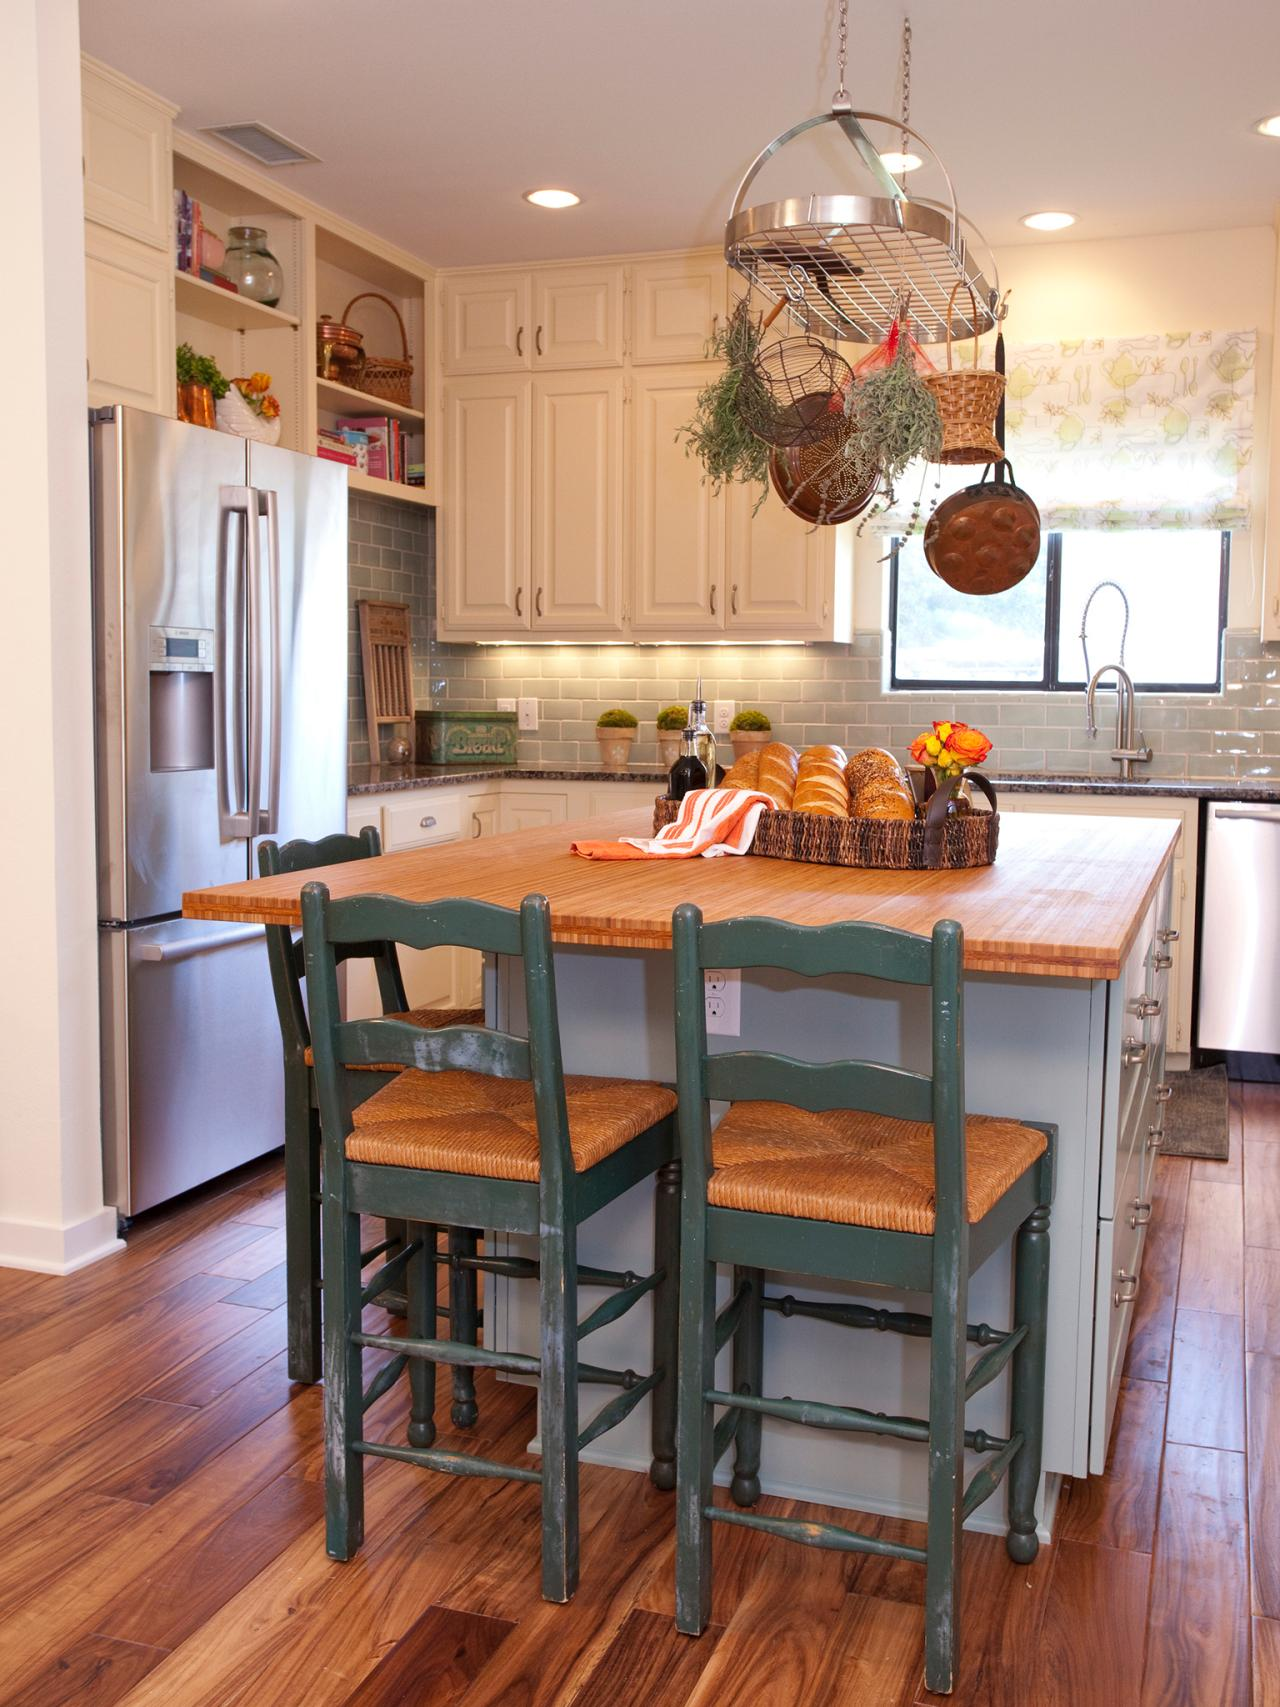 Small Kitchen With Island Design Ideas Small Kitchen Island Ideas Pictures & Tips From Hgtv  Hgtv